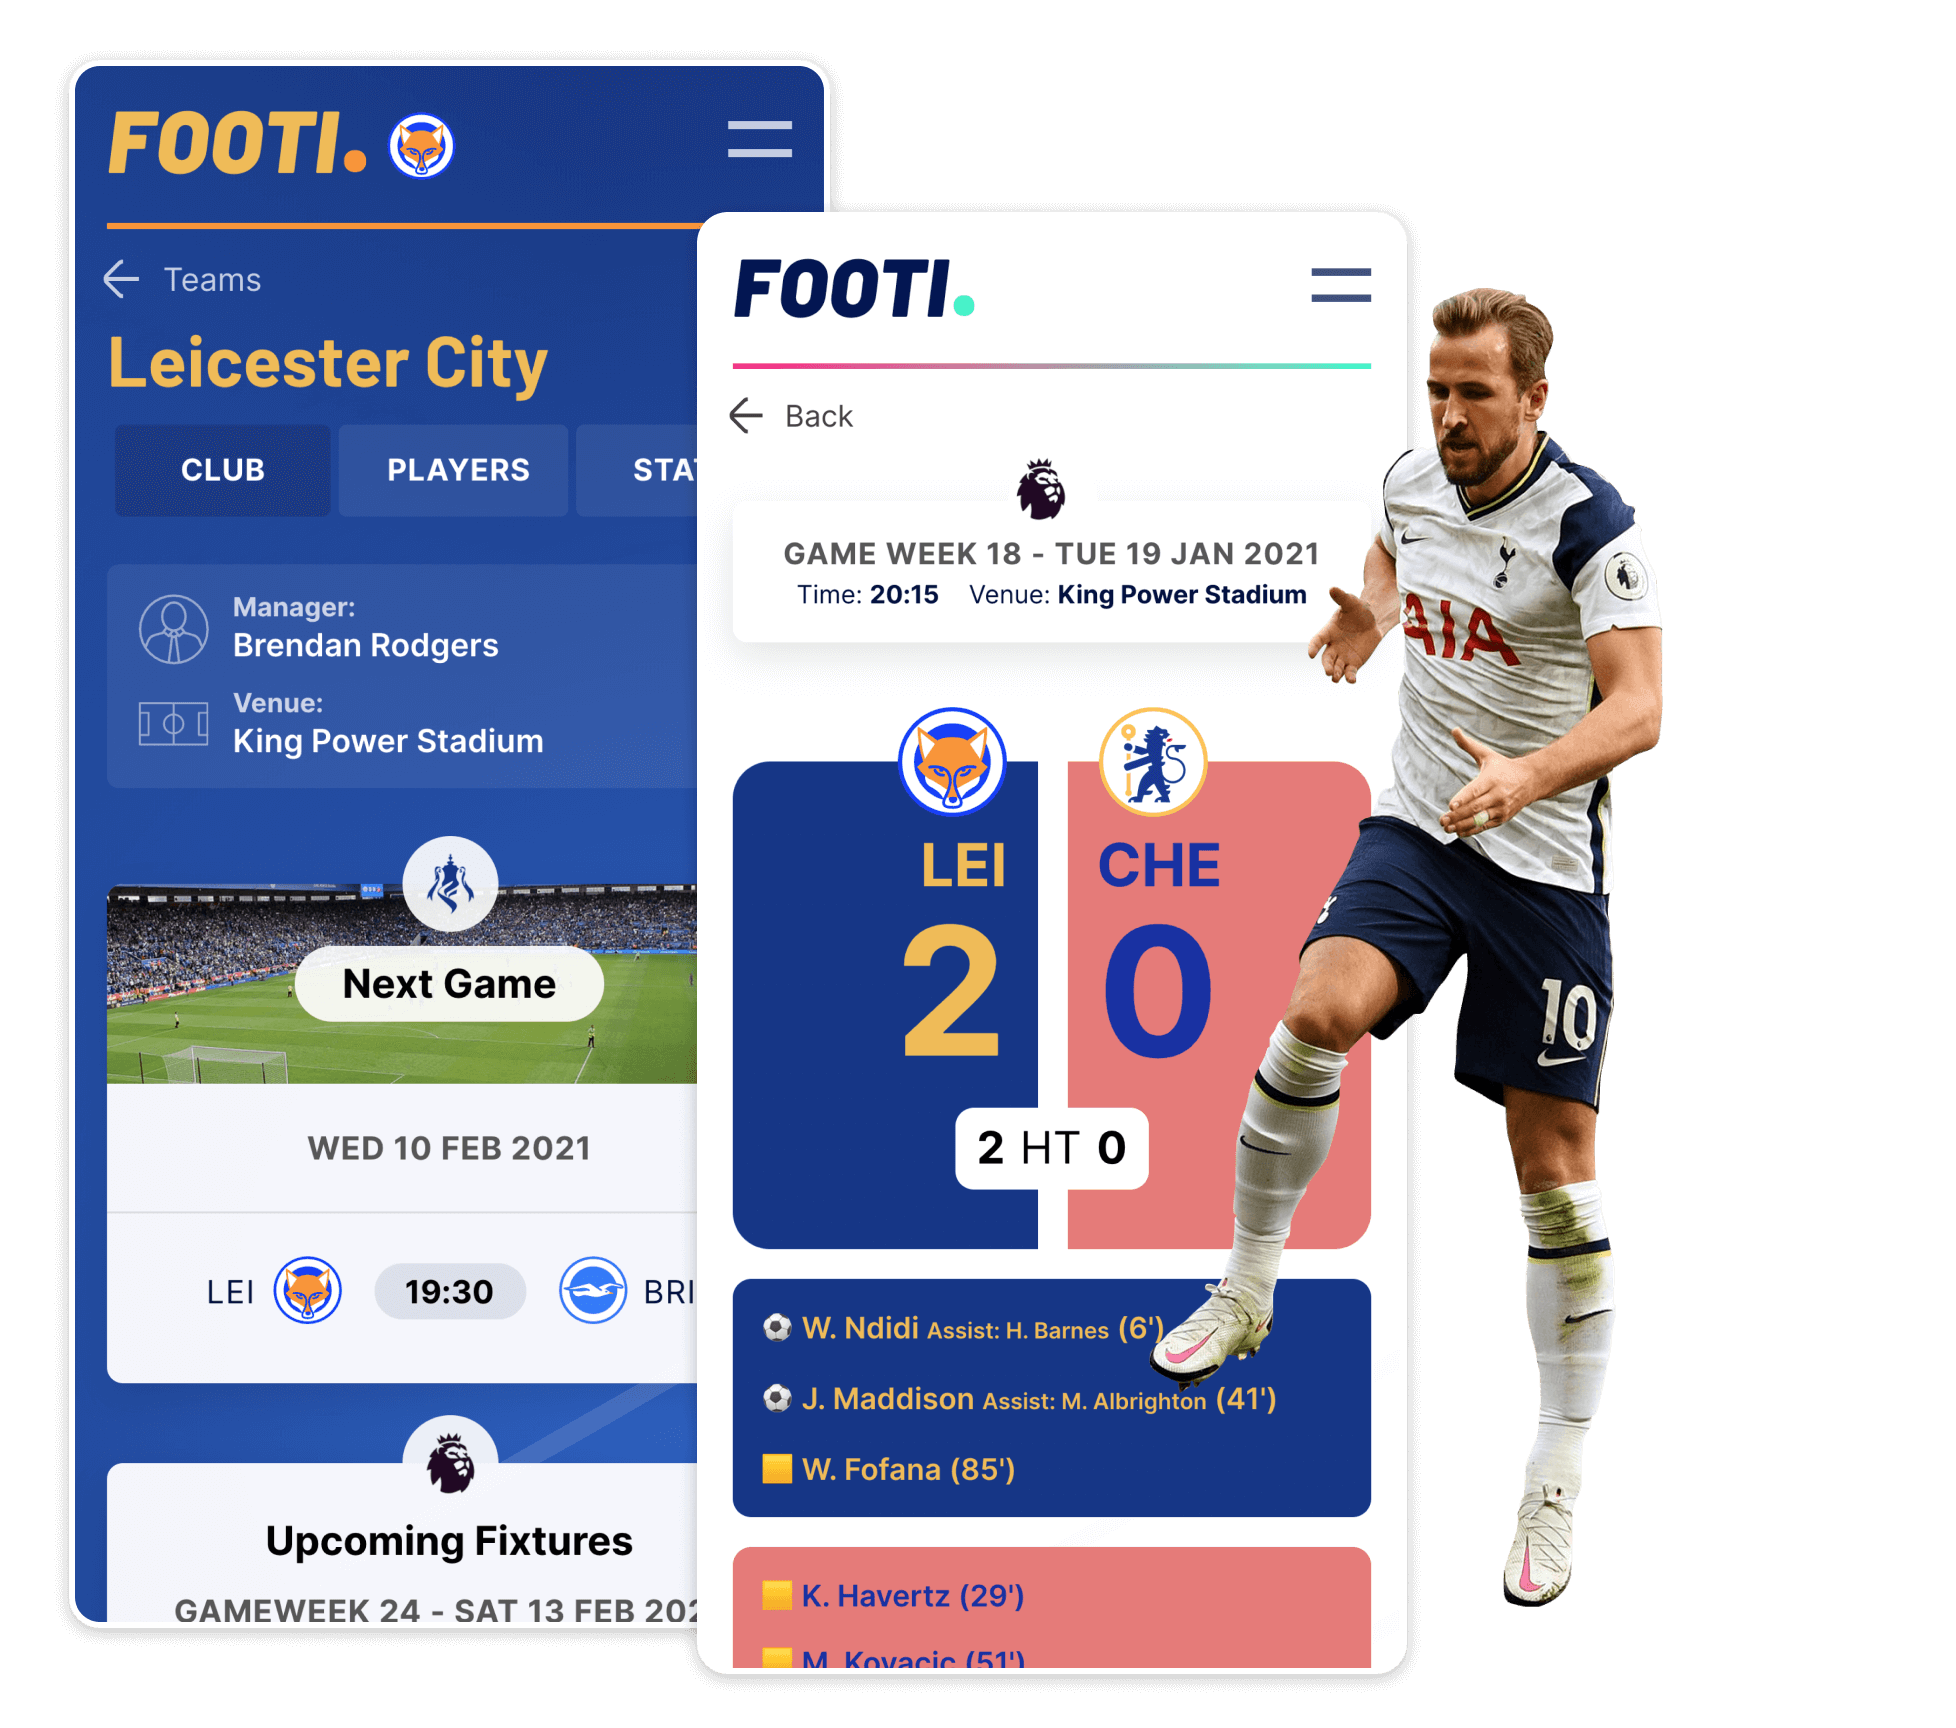 Case study image of a football player, and mobile UI designs.